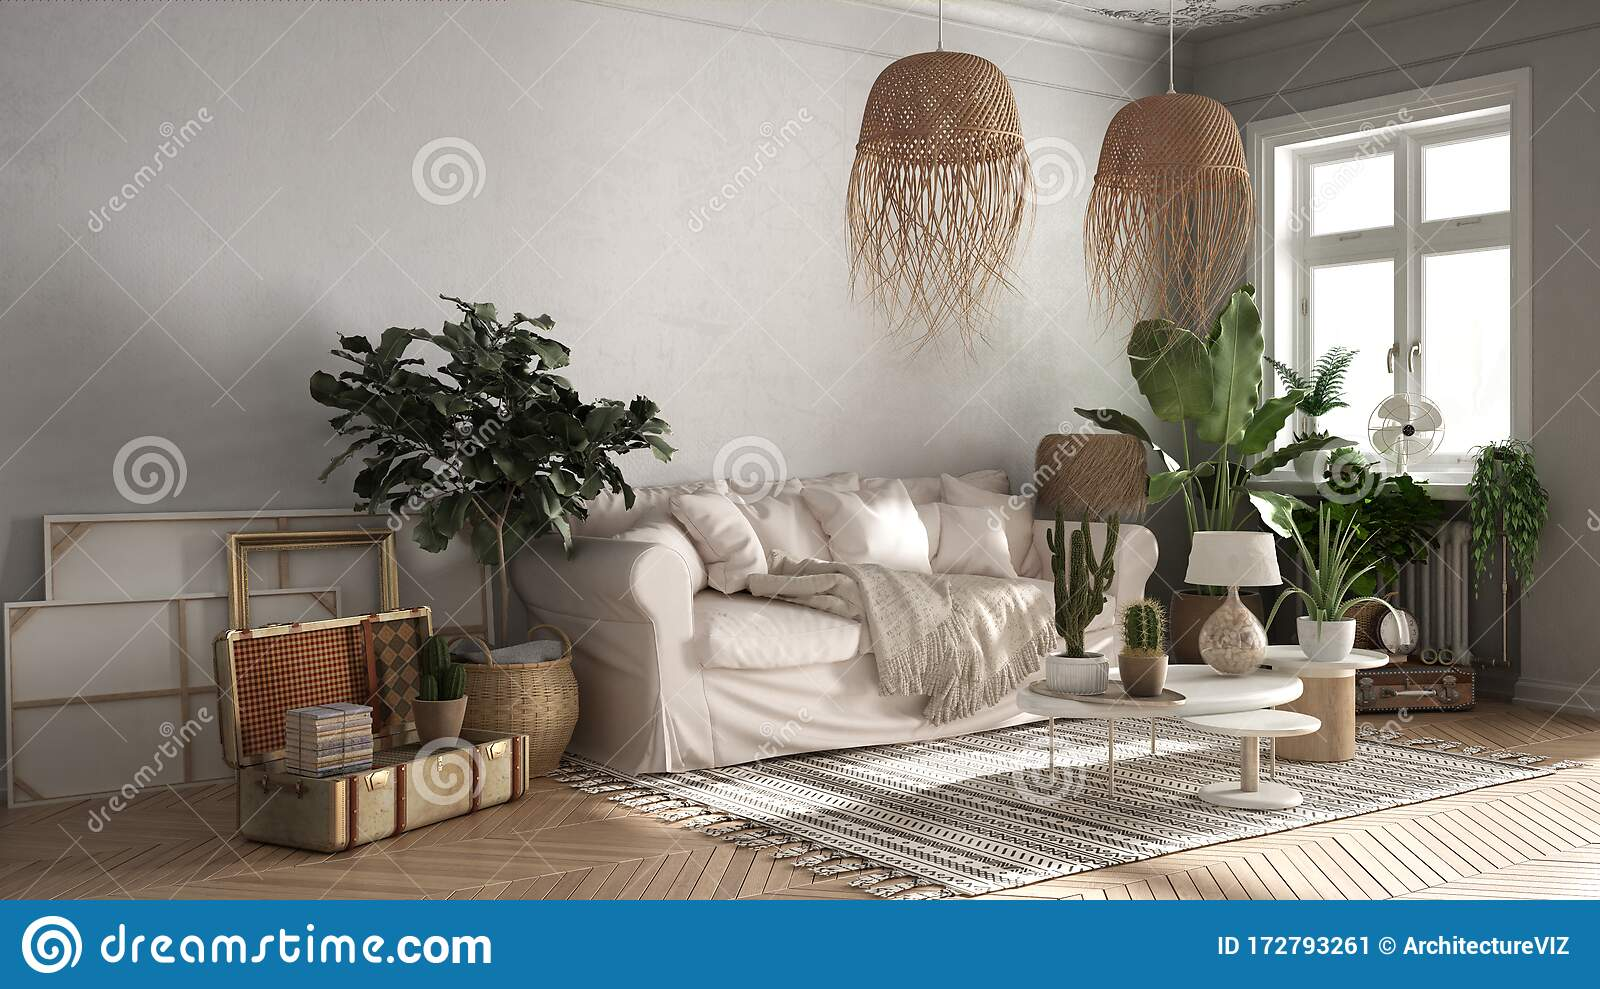 Vintage Old Style Living Room In Beige Tones Sofa Carpet Pillows And Rattan Pendant Lamps Tables With Decors And Potted Stock Illustration Illustration Of Living Rustic 172793261